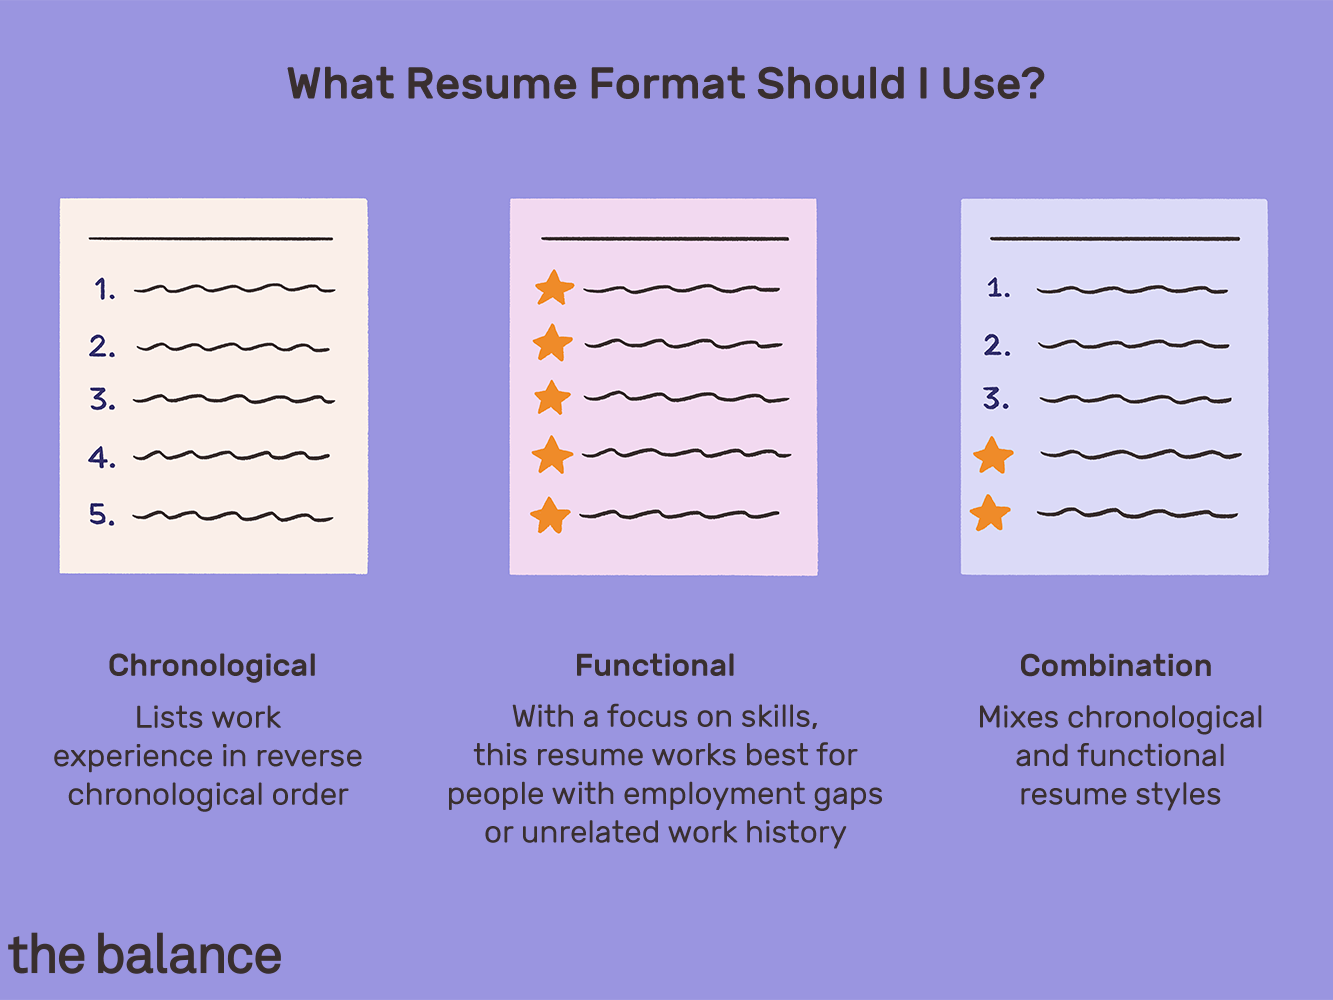 3.5/4.0) additionally, include relevant coursework on your resume if you're a recent graduate and don't have much work experience yet. Best Resume Formats With Examples And Formatting Tips